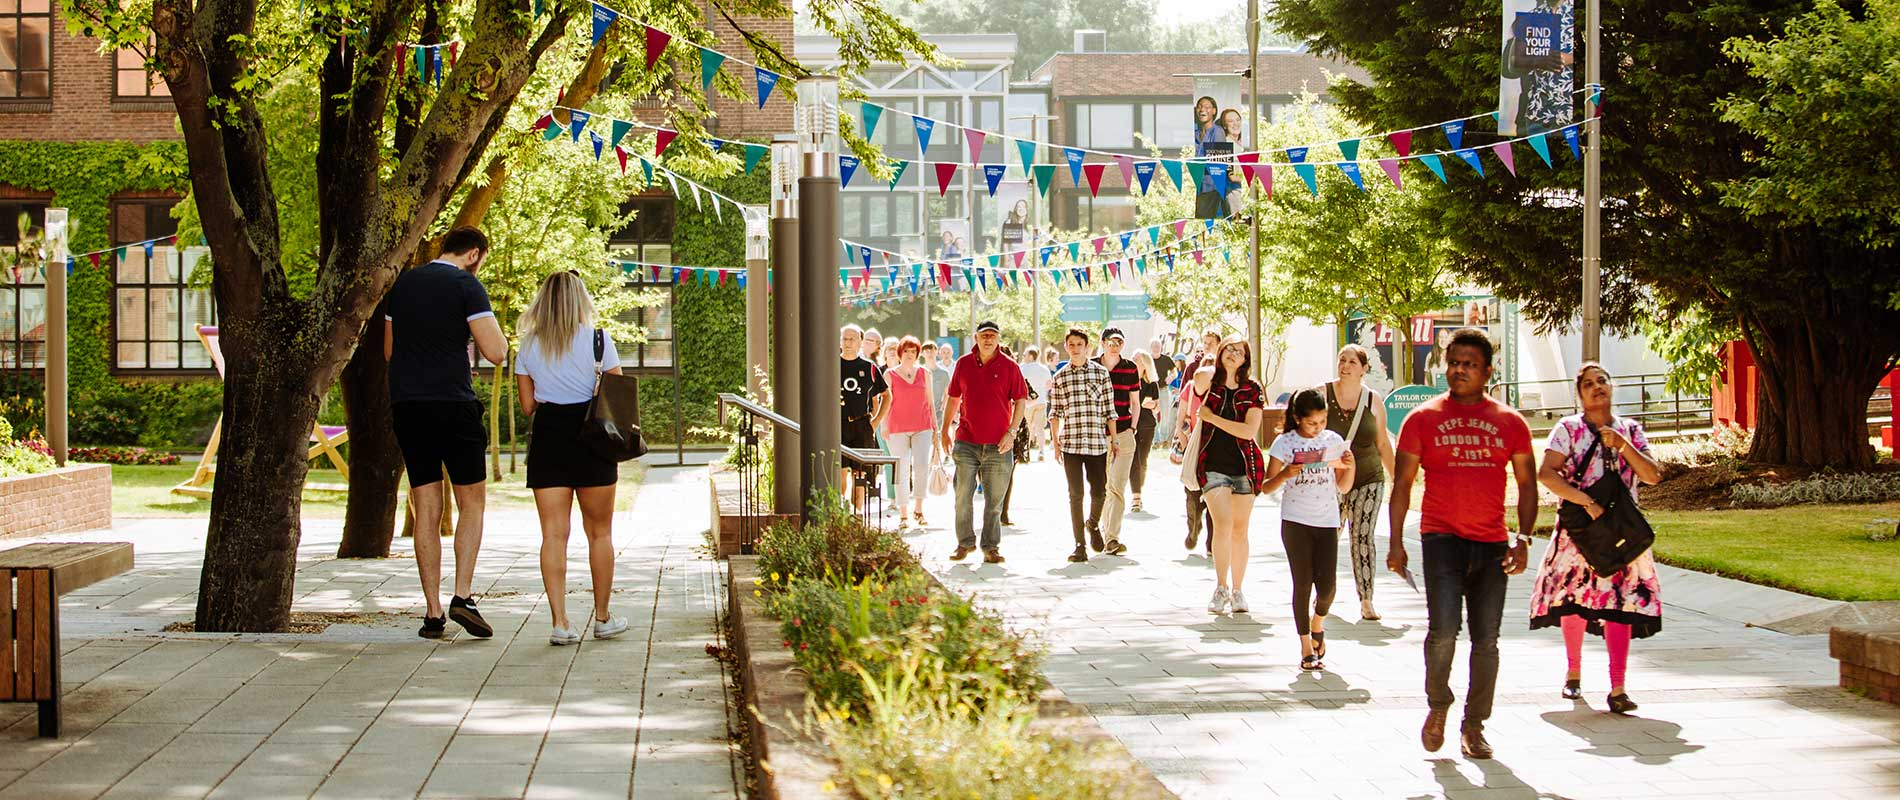 A group of smiling people walk through the University of Hull's campus, through trees with colourful bunting overhead.